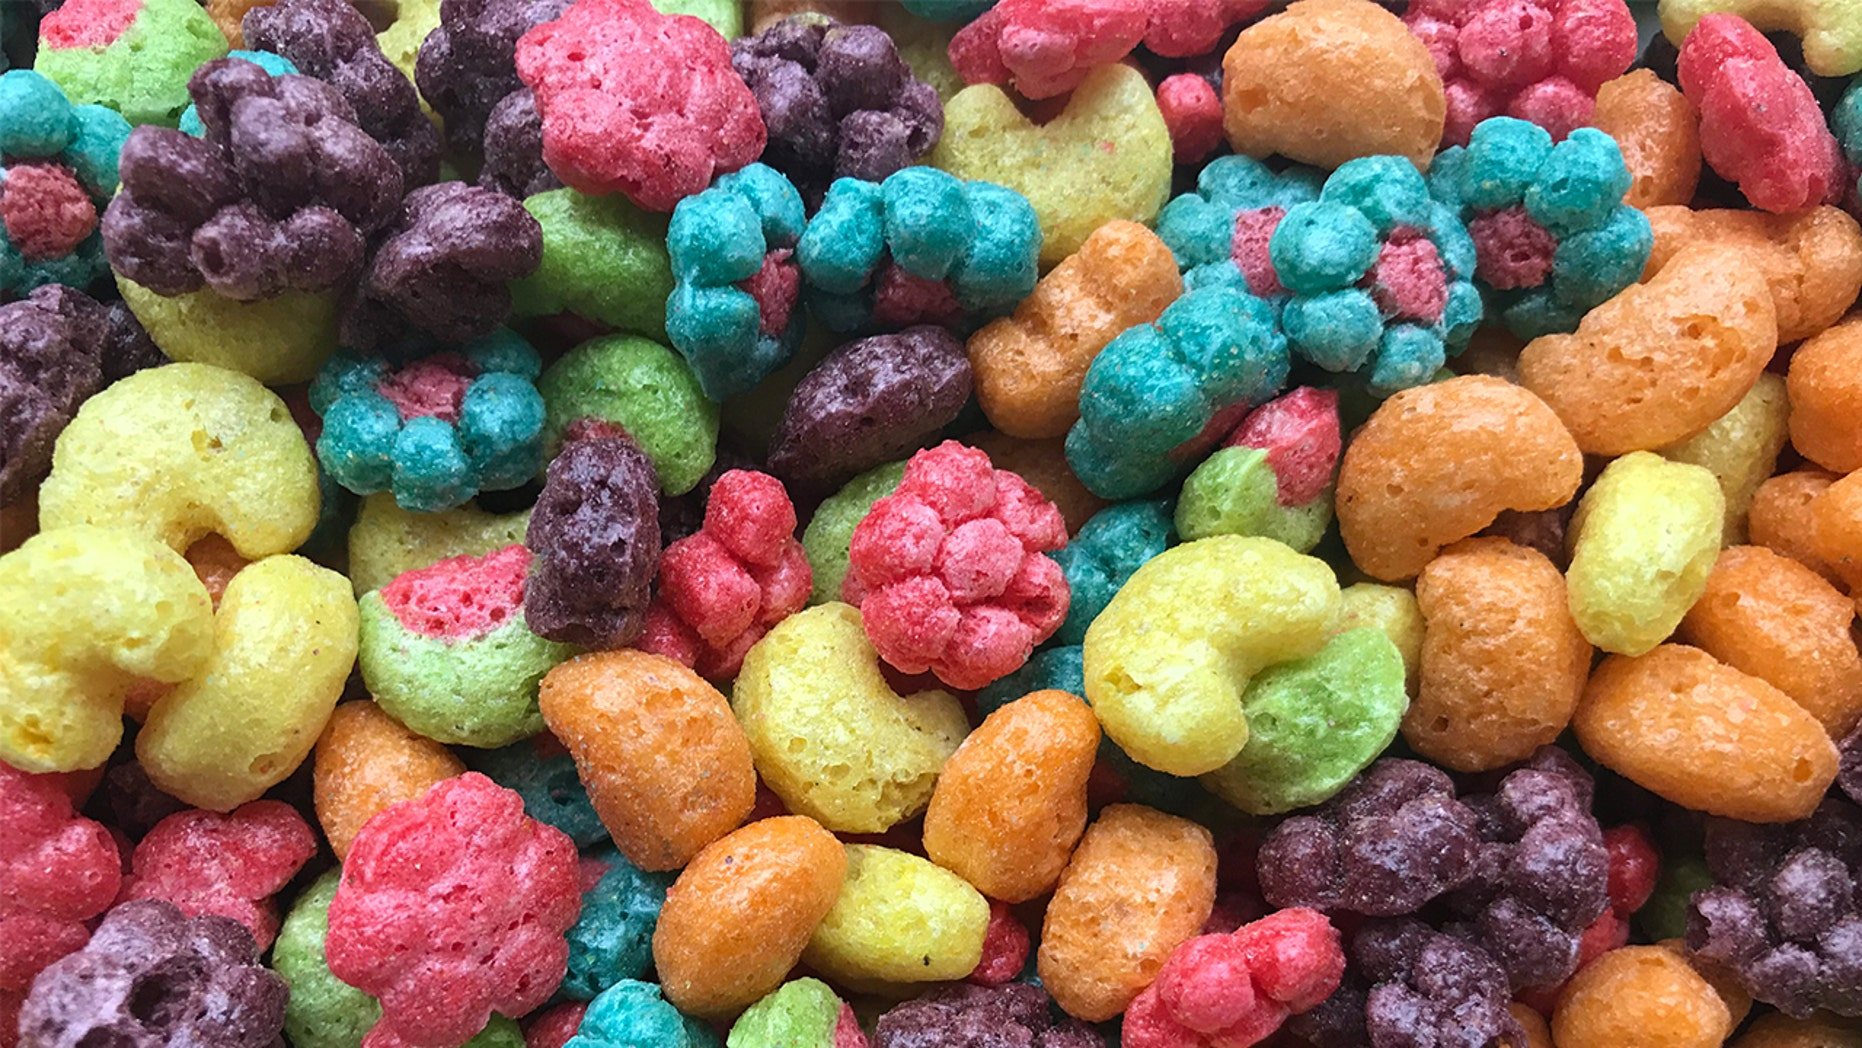 Trix is bringing back the beloved fruity shapes of the 90s.